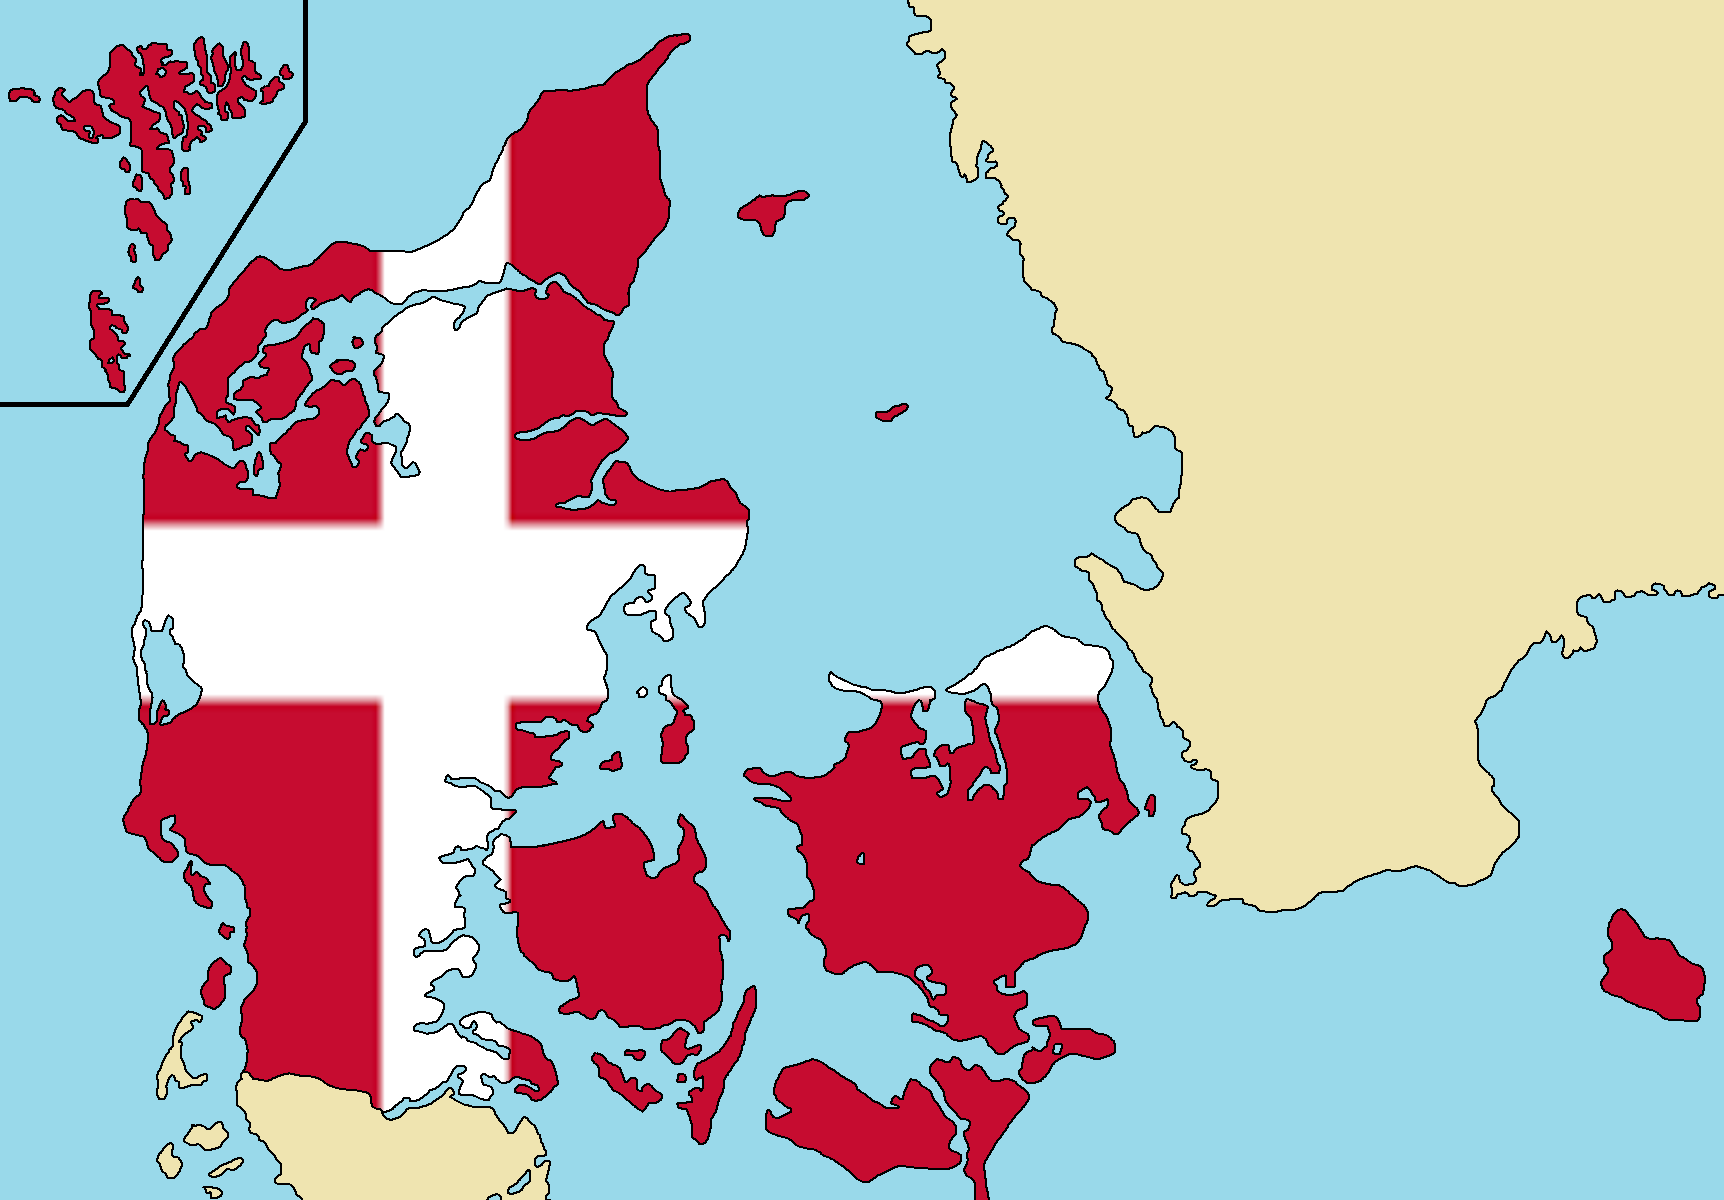 blank map of denmarkpng. image  blank map of denmarkpng  thefutureofeuropes wiki